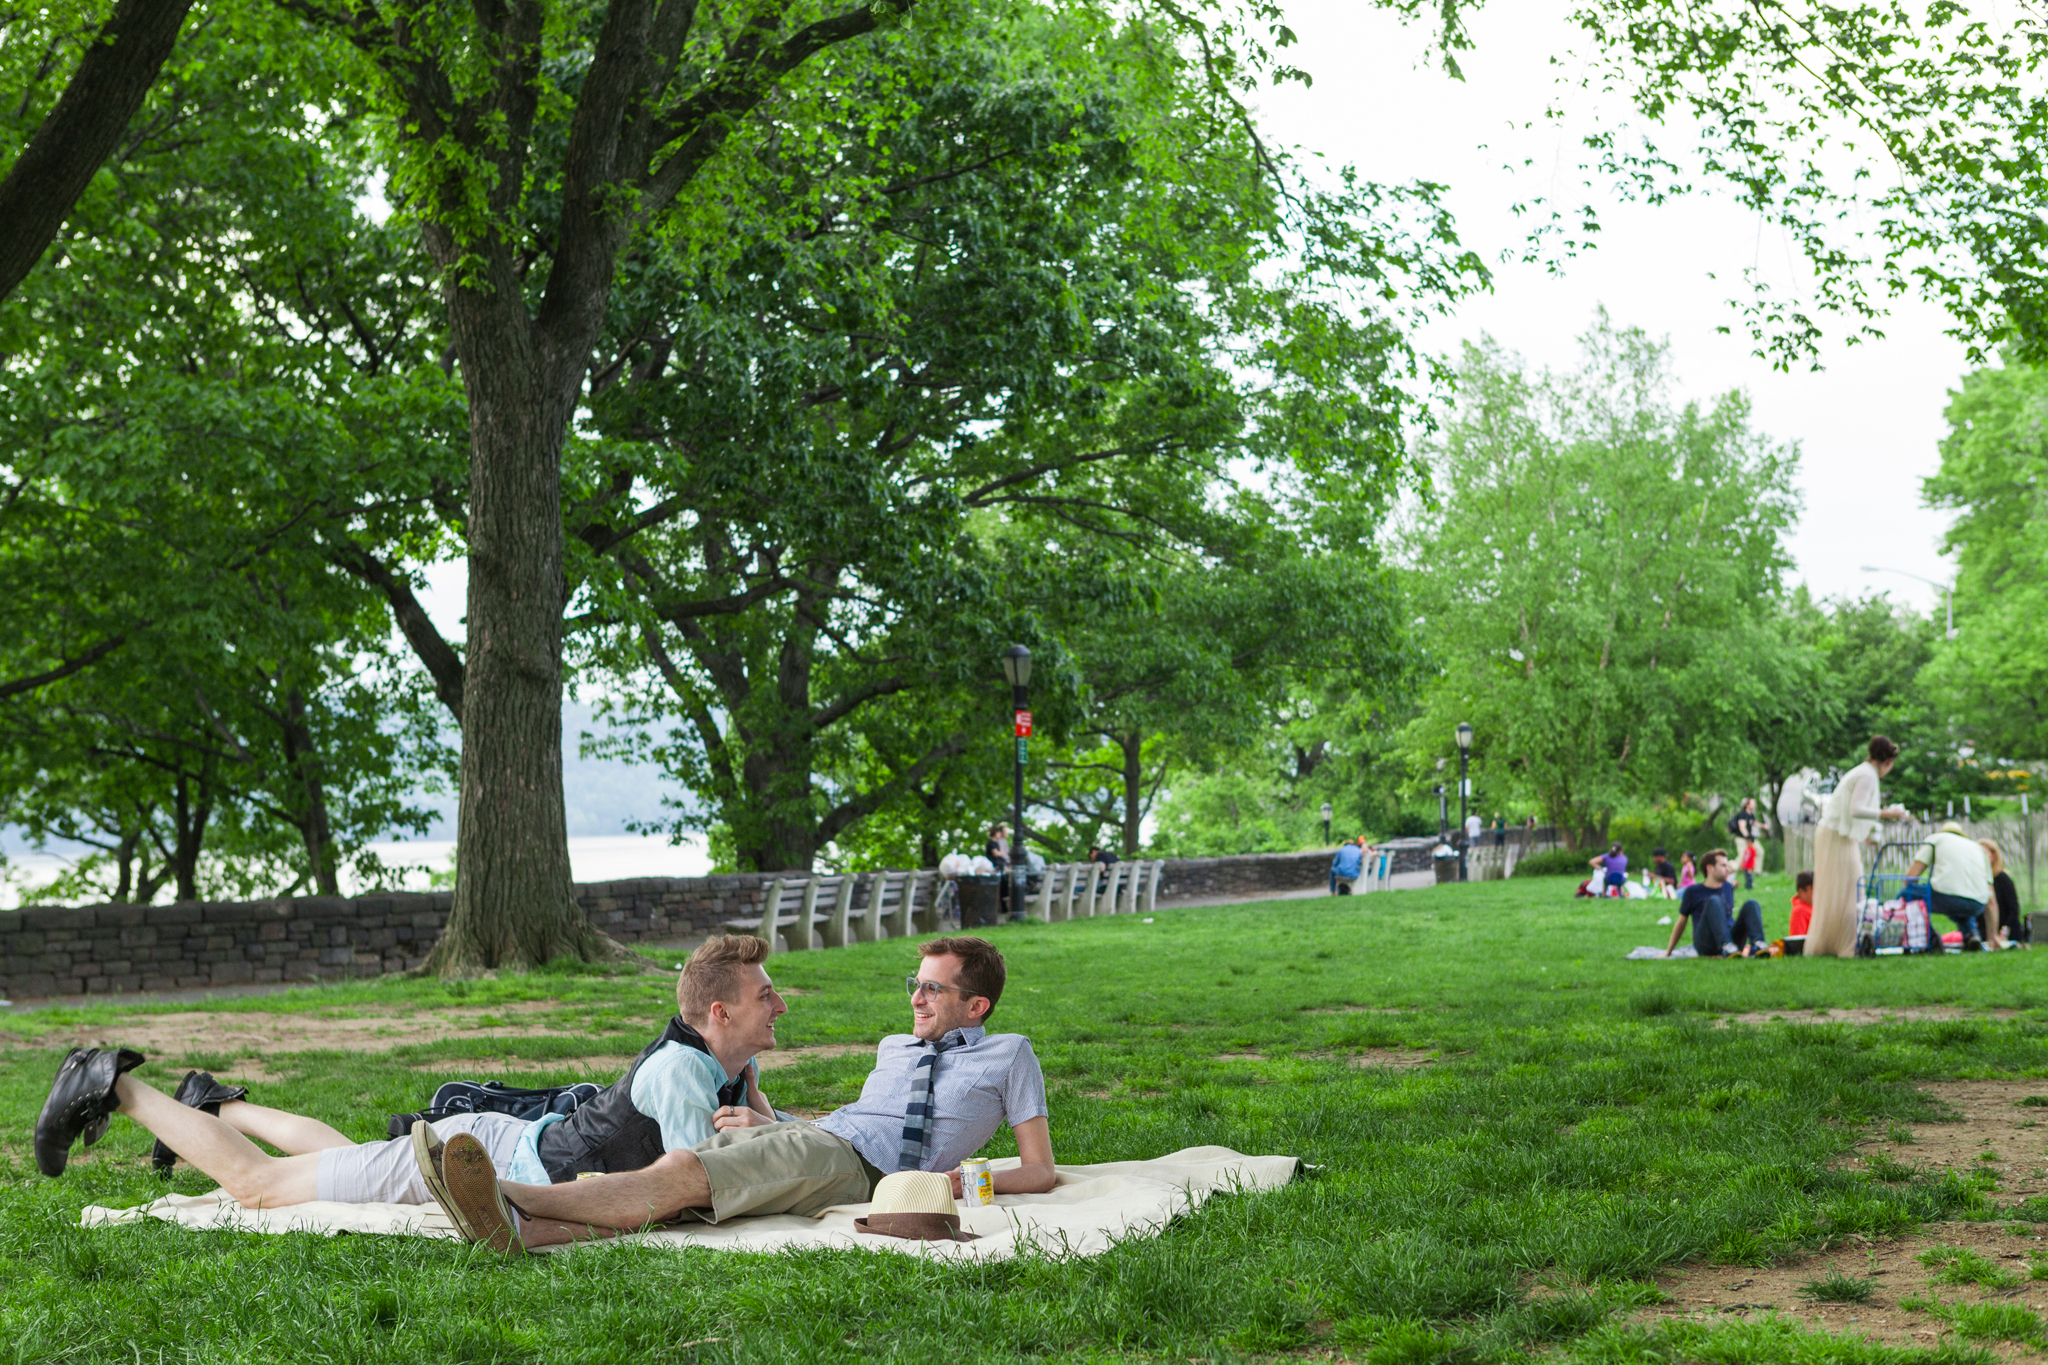 Find a peaceful respite in Fort Tryon Park